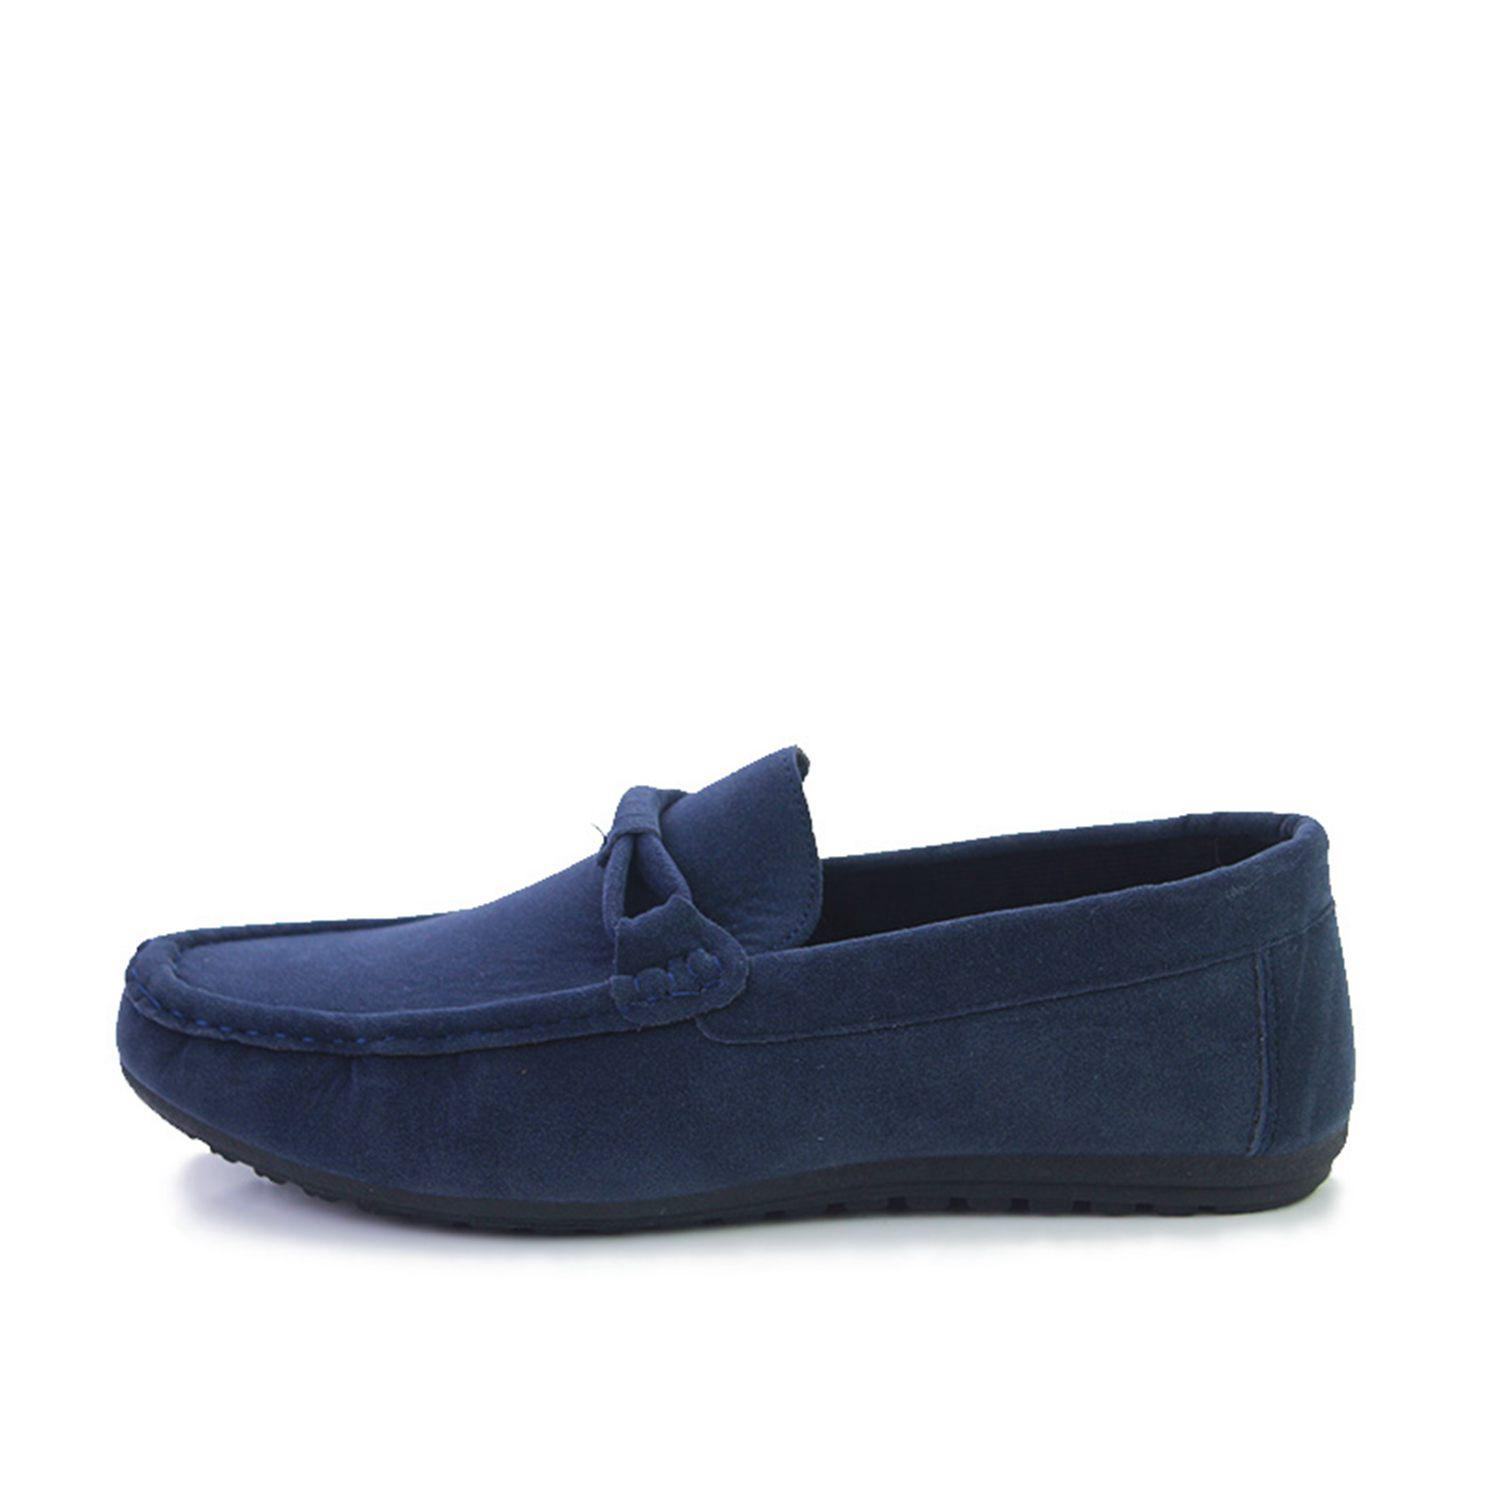 DCOS Suede Leather Men Flats New Soft Men Casual Shoes High Quality Men Loafers Flats Gommino Driving Shoes new handmade spring summer soft dough leather flats quality leather men loafers men moccasin casual shoes driving shoes